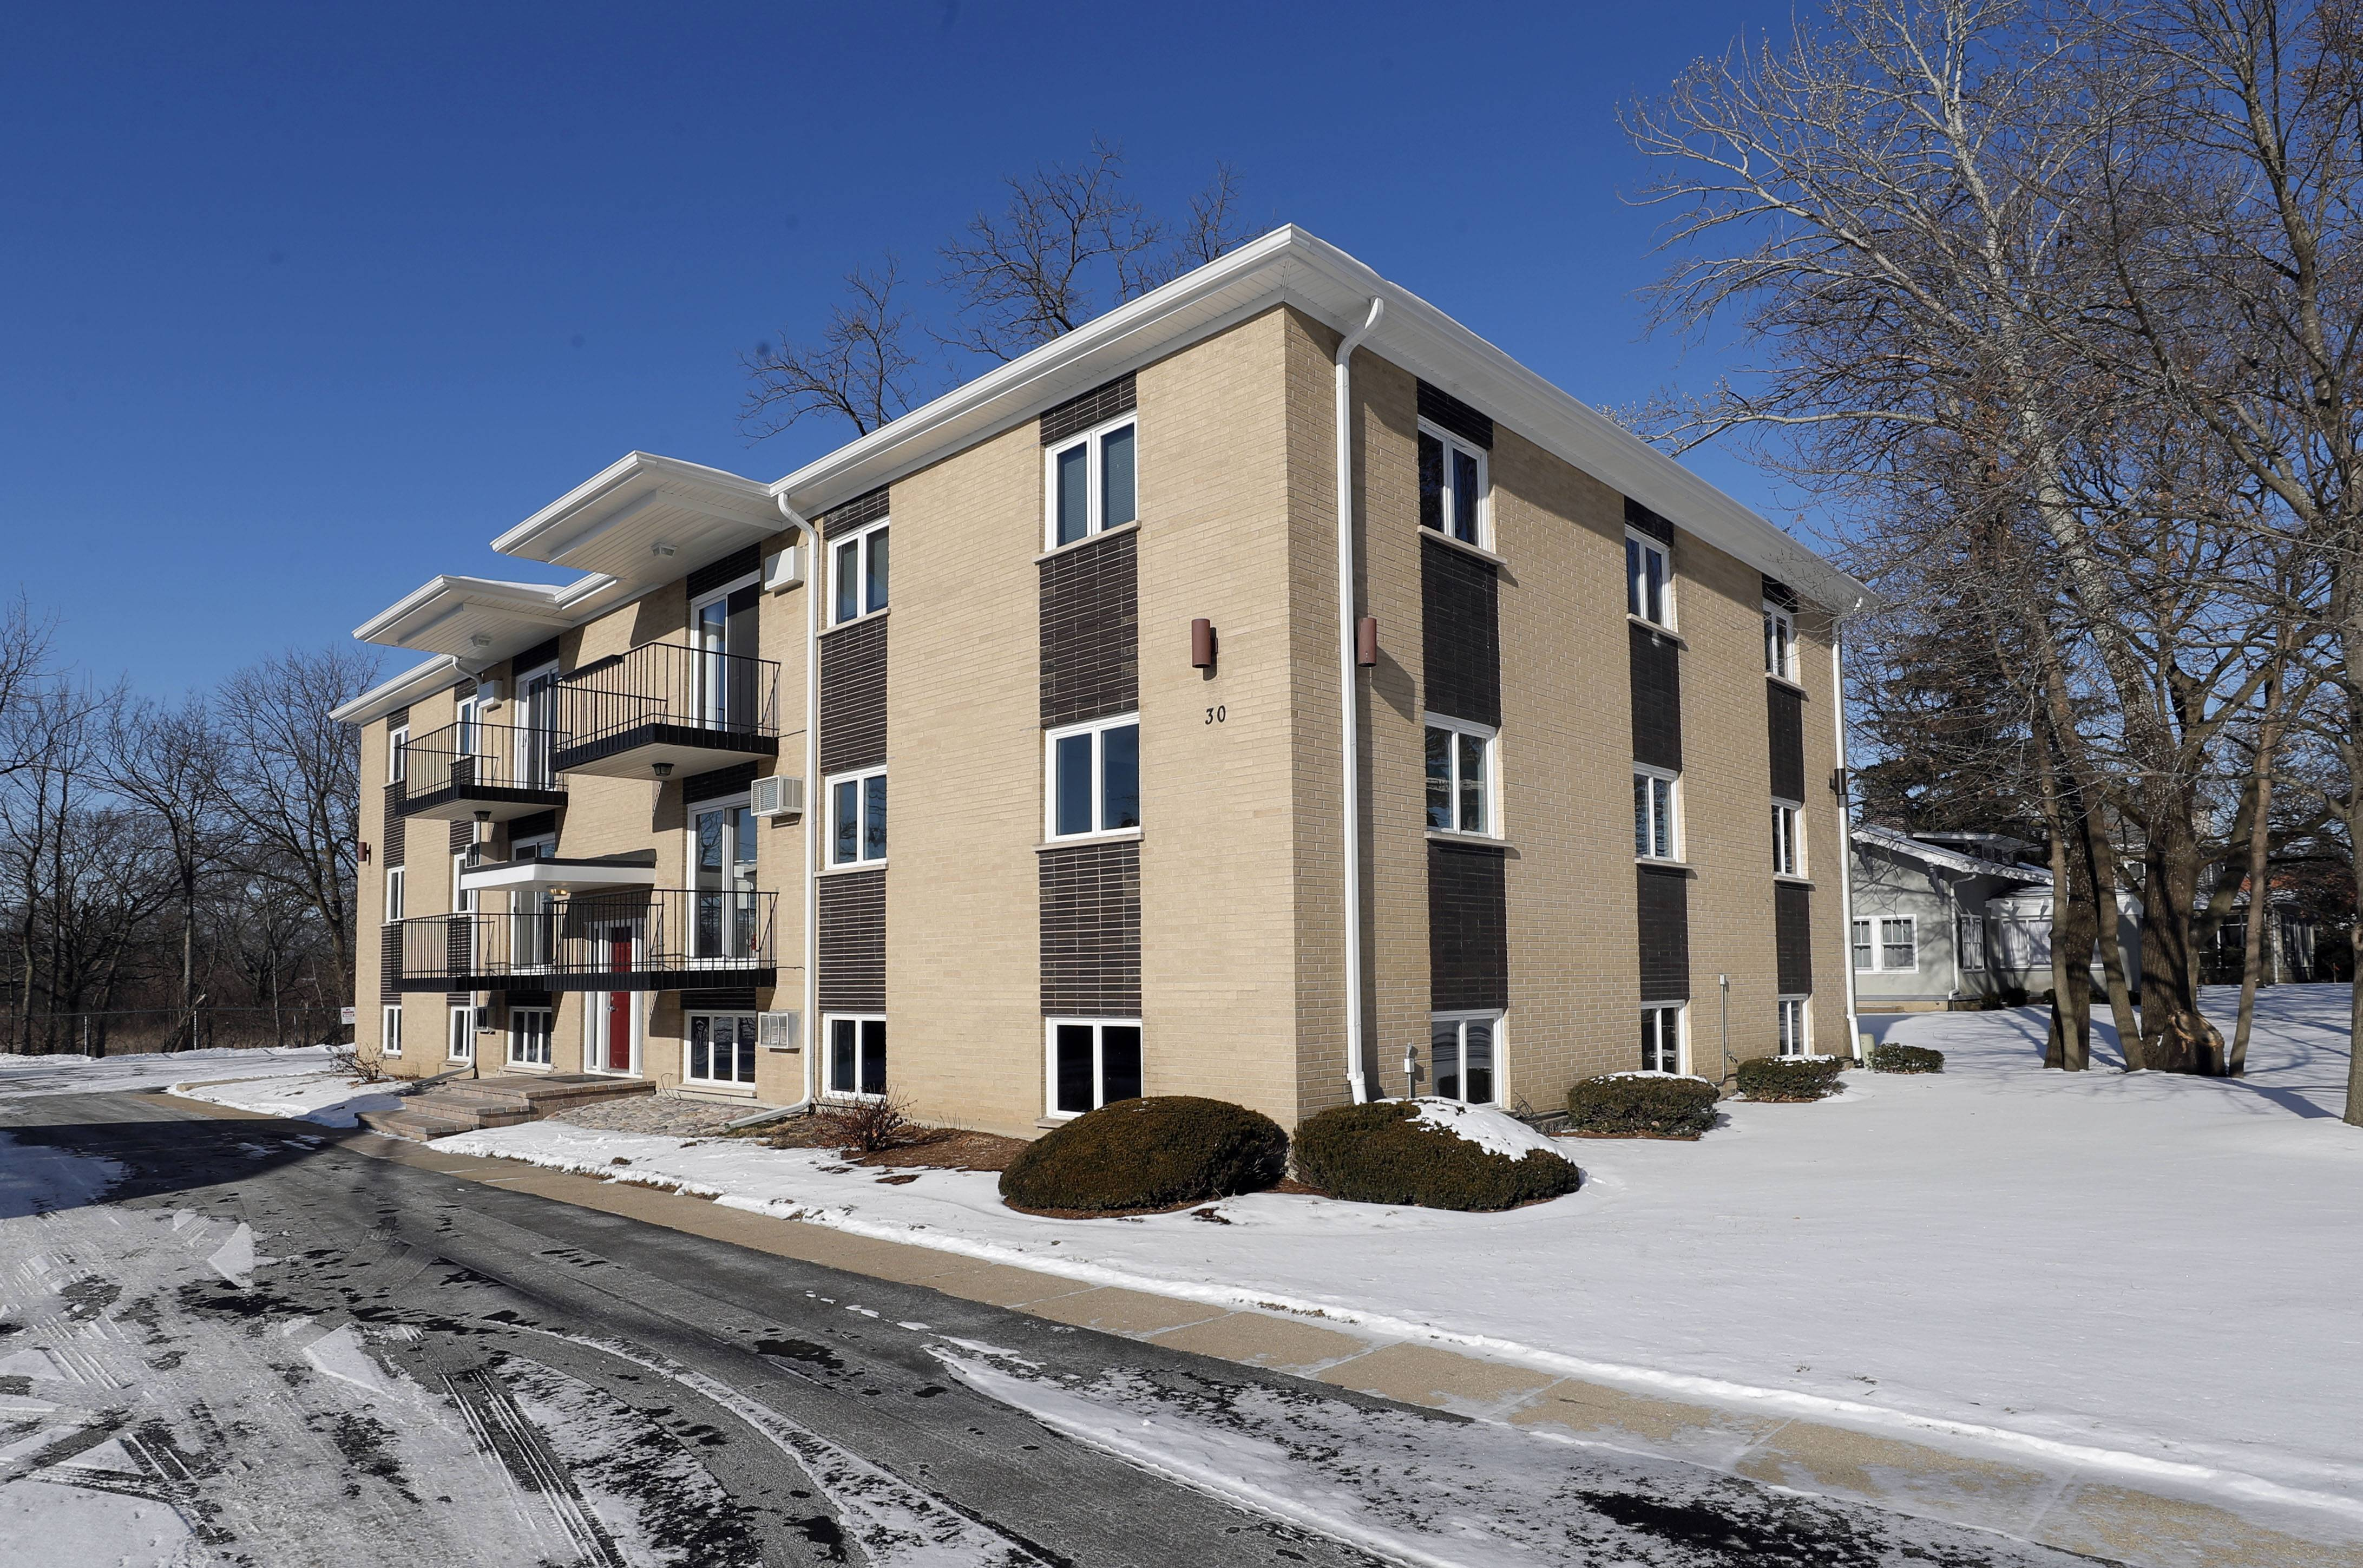 This 12-unit apartment building on Cedar Avenue in Lake Villa was rehabbed as part of a village incentive to revive what is considered the downtown area.